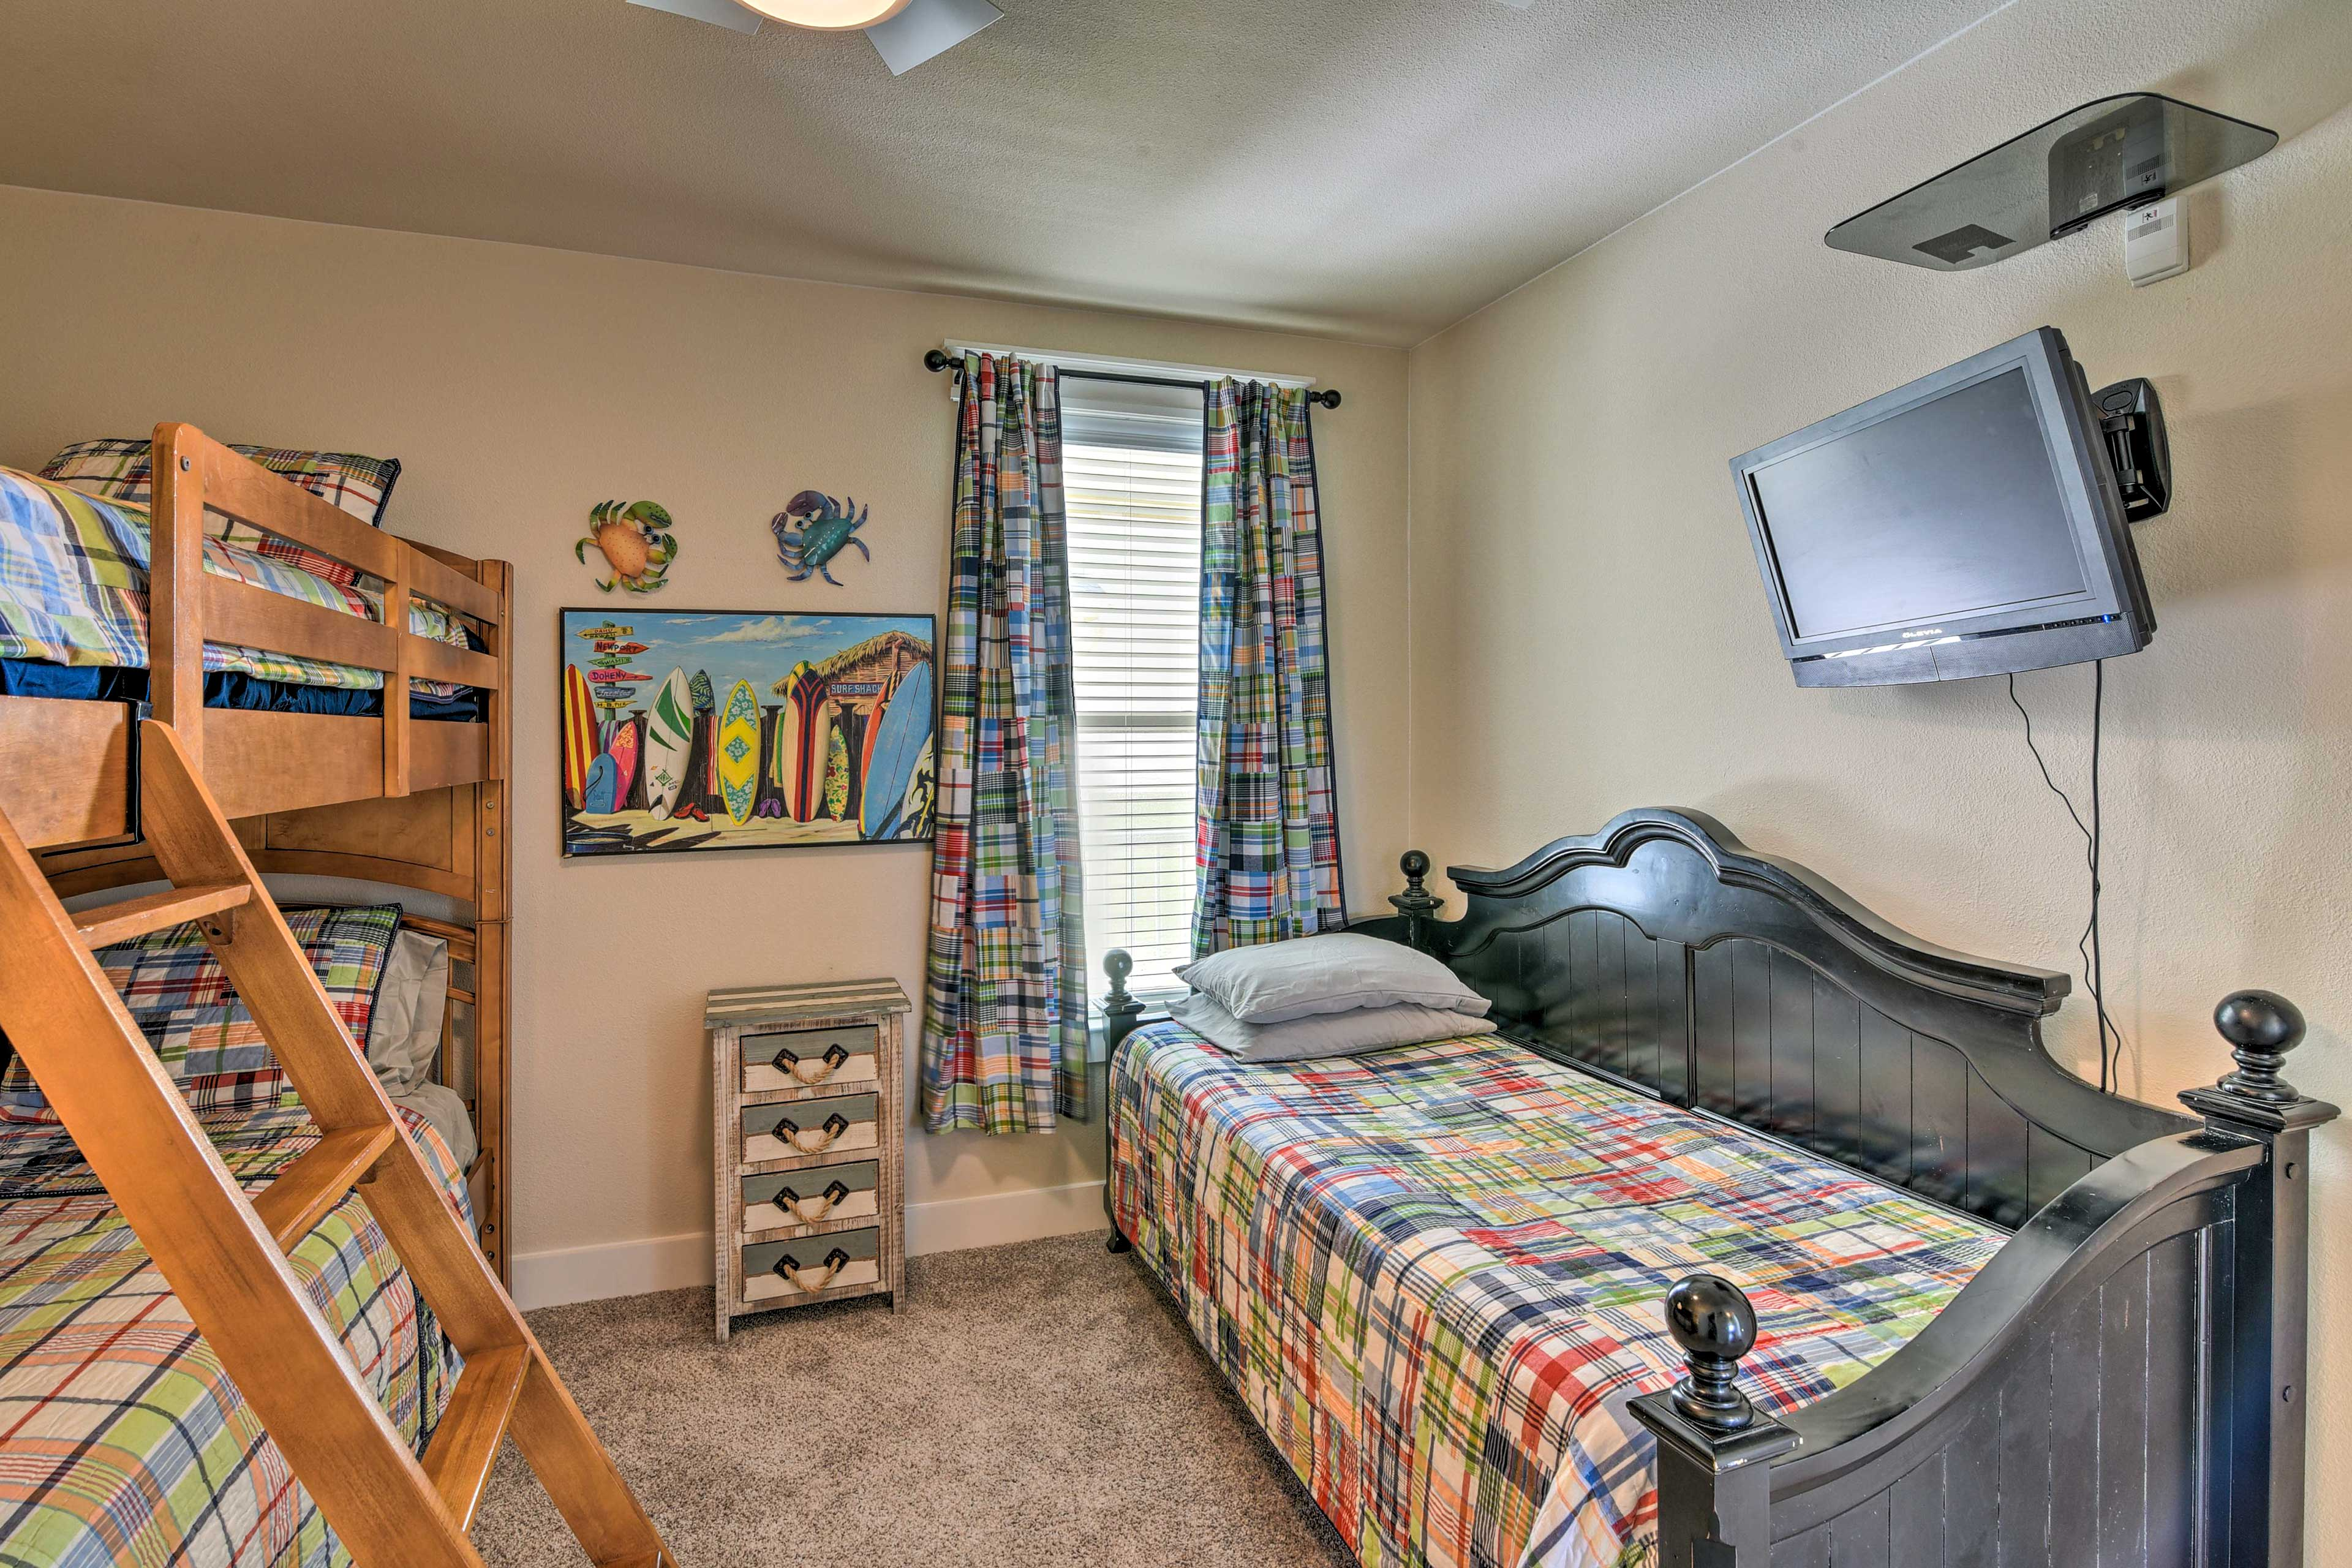 Siblings and friends will love sharing this room.